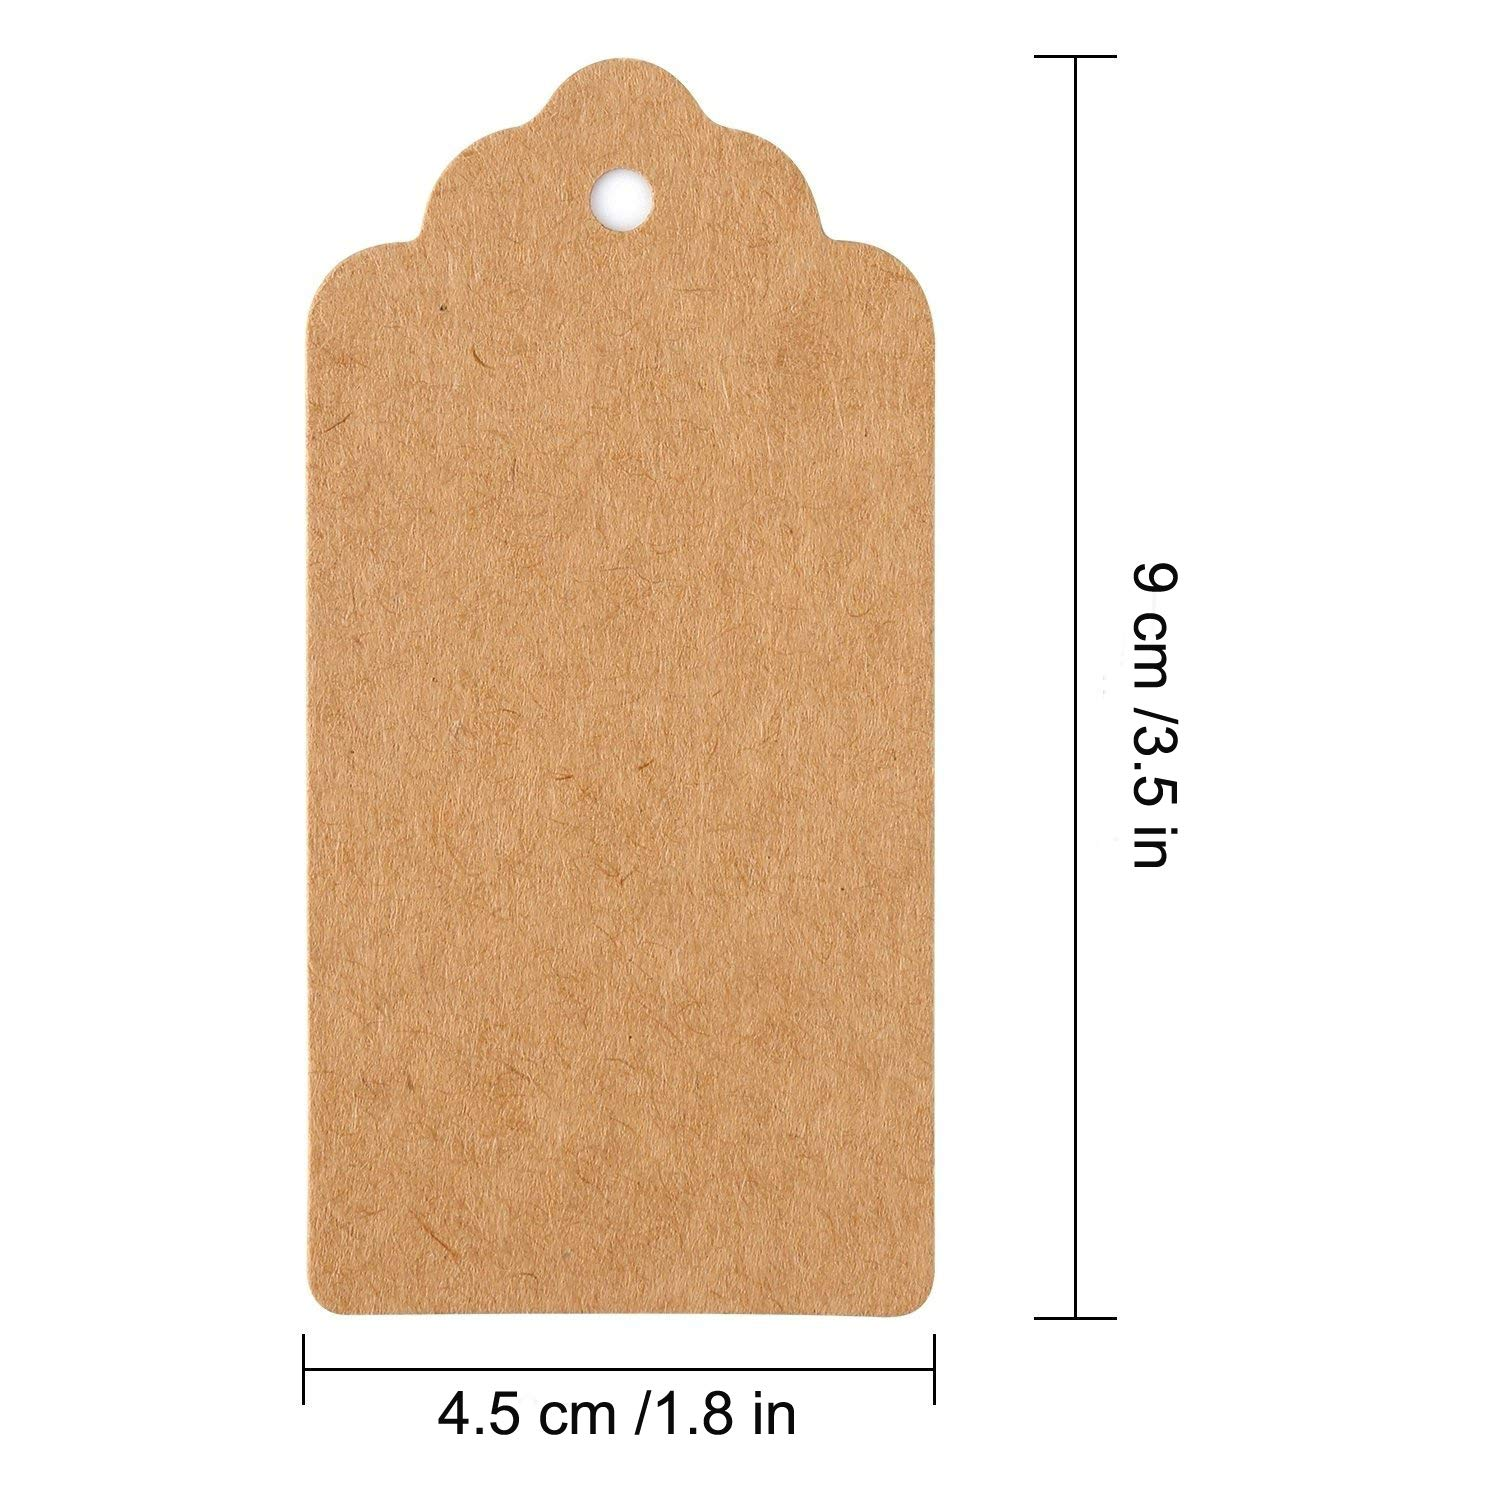 Gift Tags Personalized Kraft Paper Tag DIY Craft Price Tags 100 PCS Brown for Wedding Party Favors Baby Shower Birthday Christmas with Bonus 33 Feet Natural Jute Twine